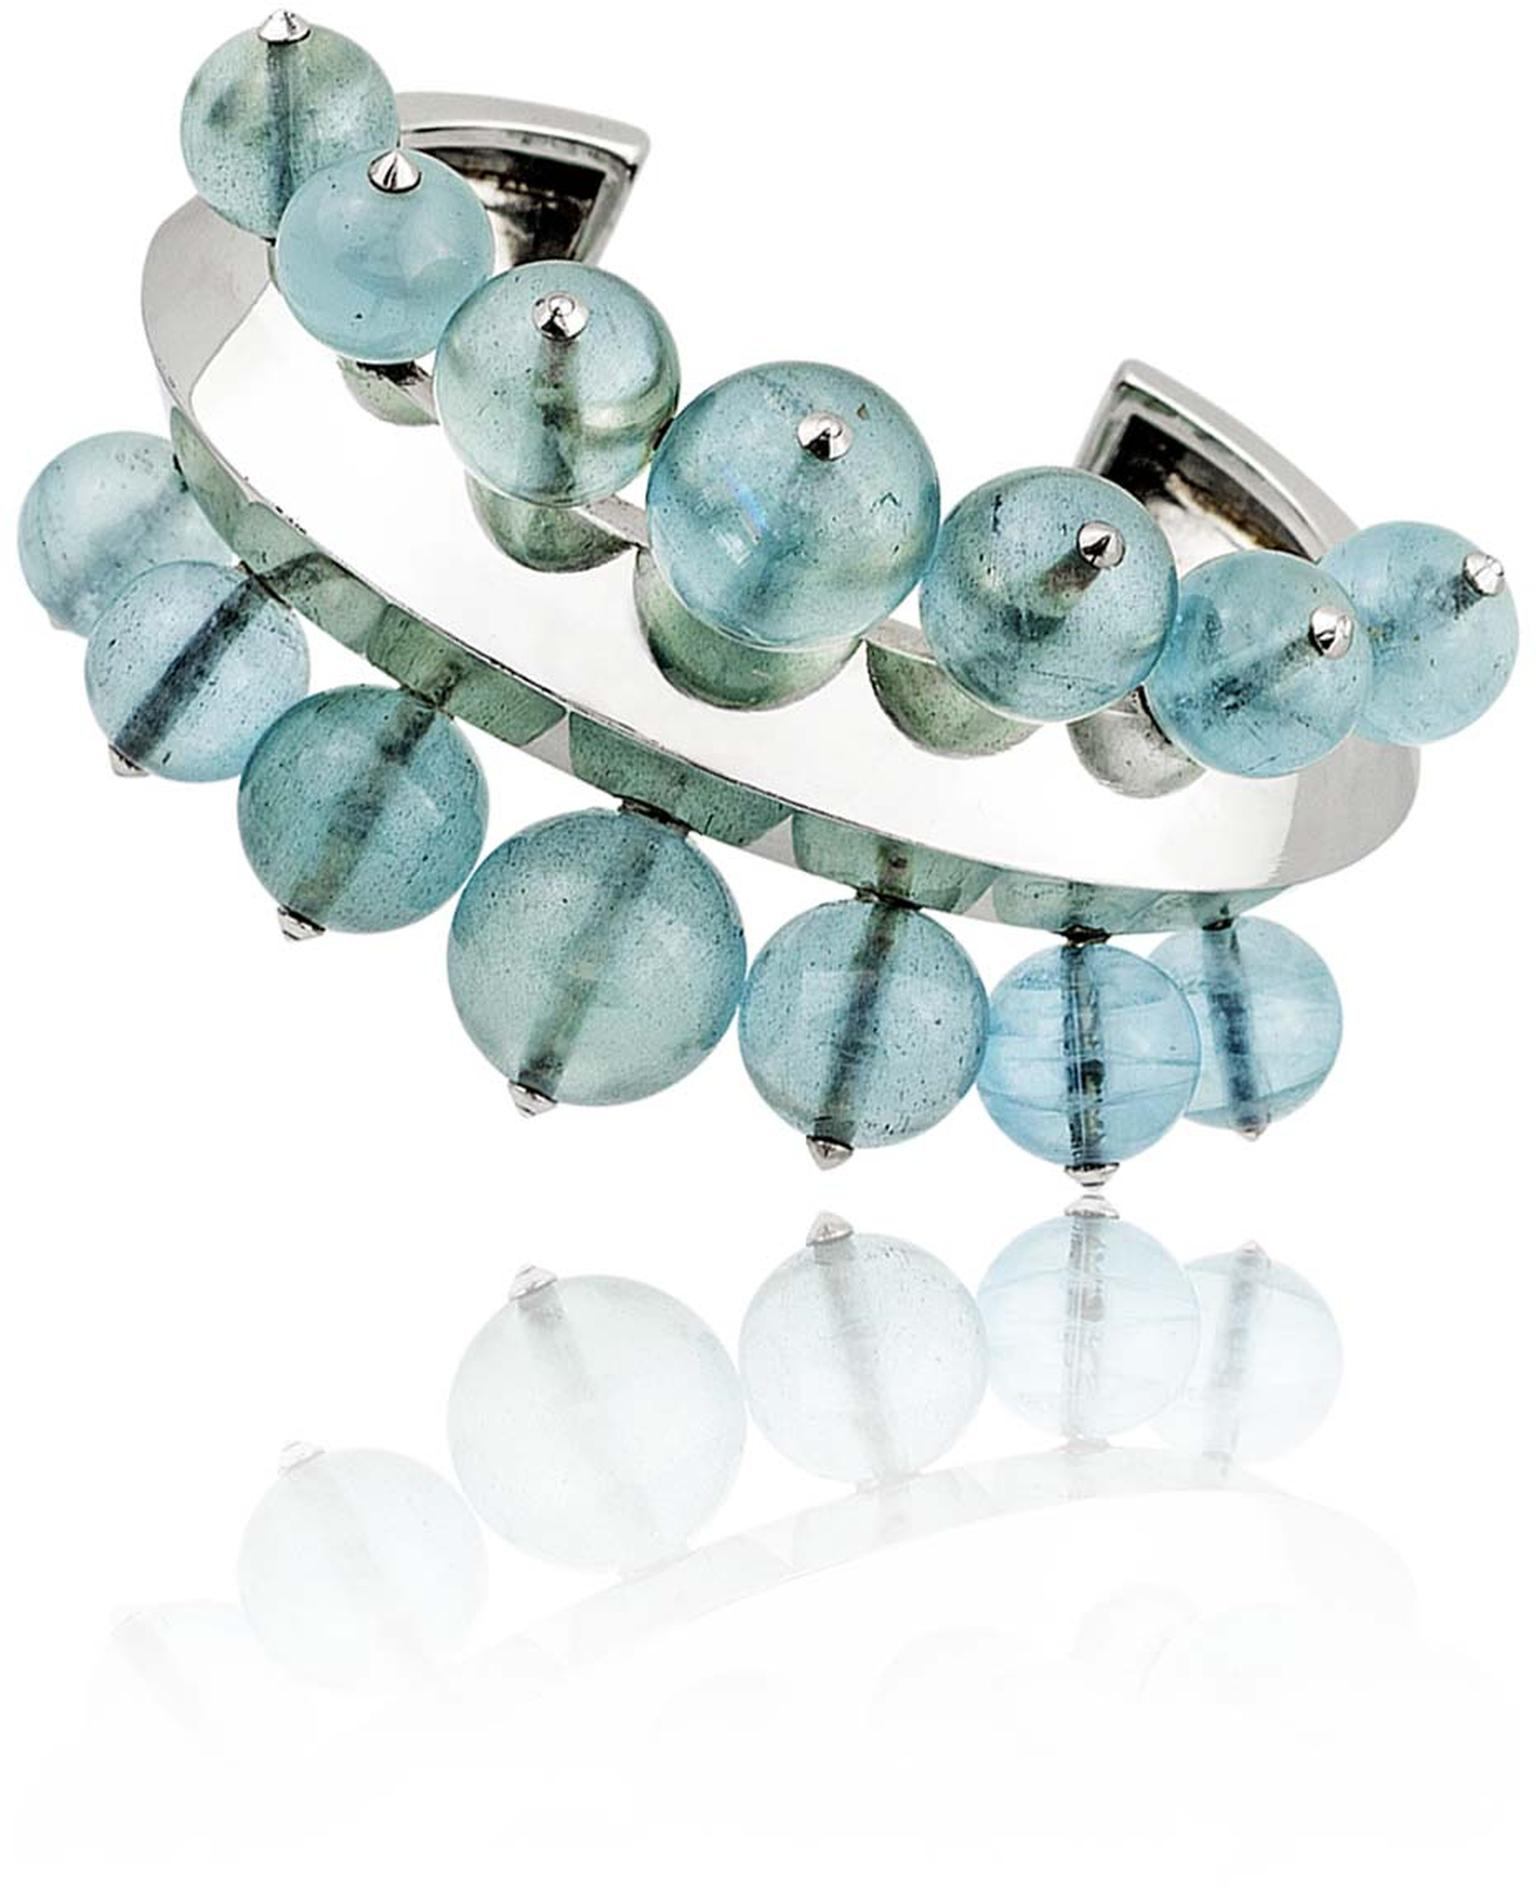 Stephen Russell Gallery's white gold and aquamarine bead bracelet by & Aqua Bead Bracelet by Suzanne Belperron.